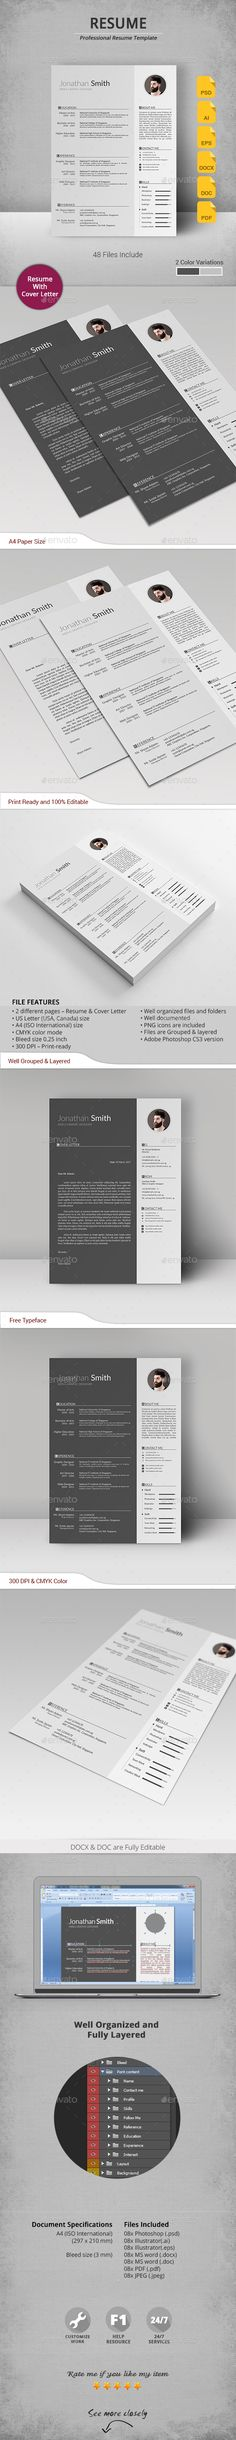 #Resume - Resumes Stationery Download here: https://graphicriver.net/item/resume/19345585?ref=alena994